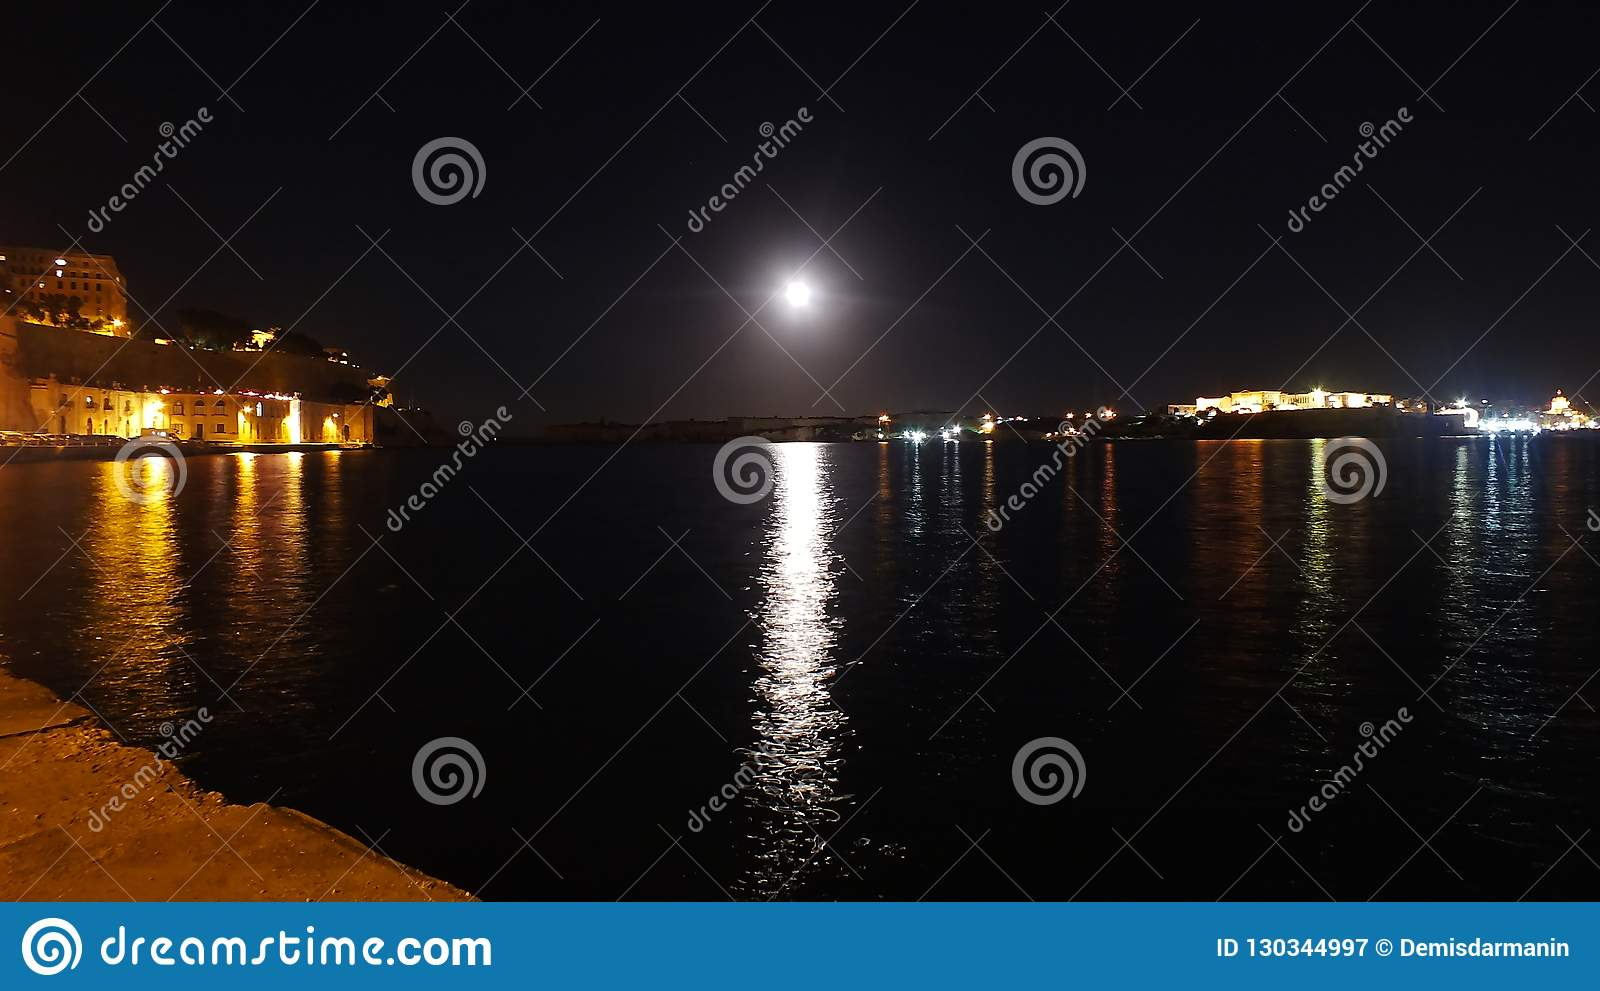 Pin by Mary Romero on ReFLeCTioNS   Pinterest   Full Moon Reflecting Off Water